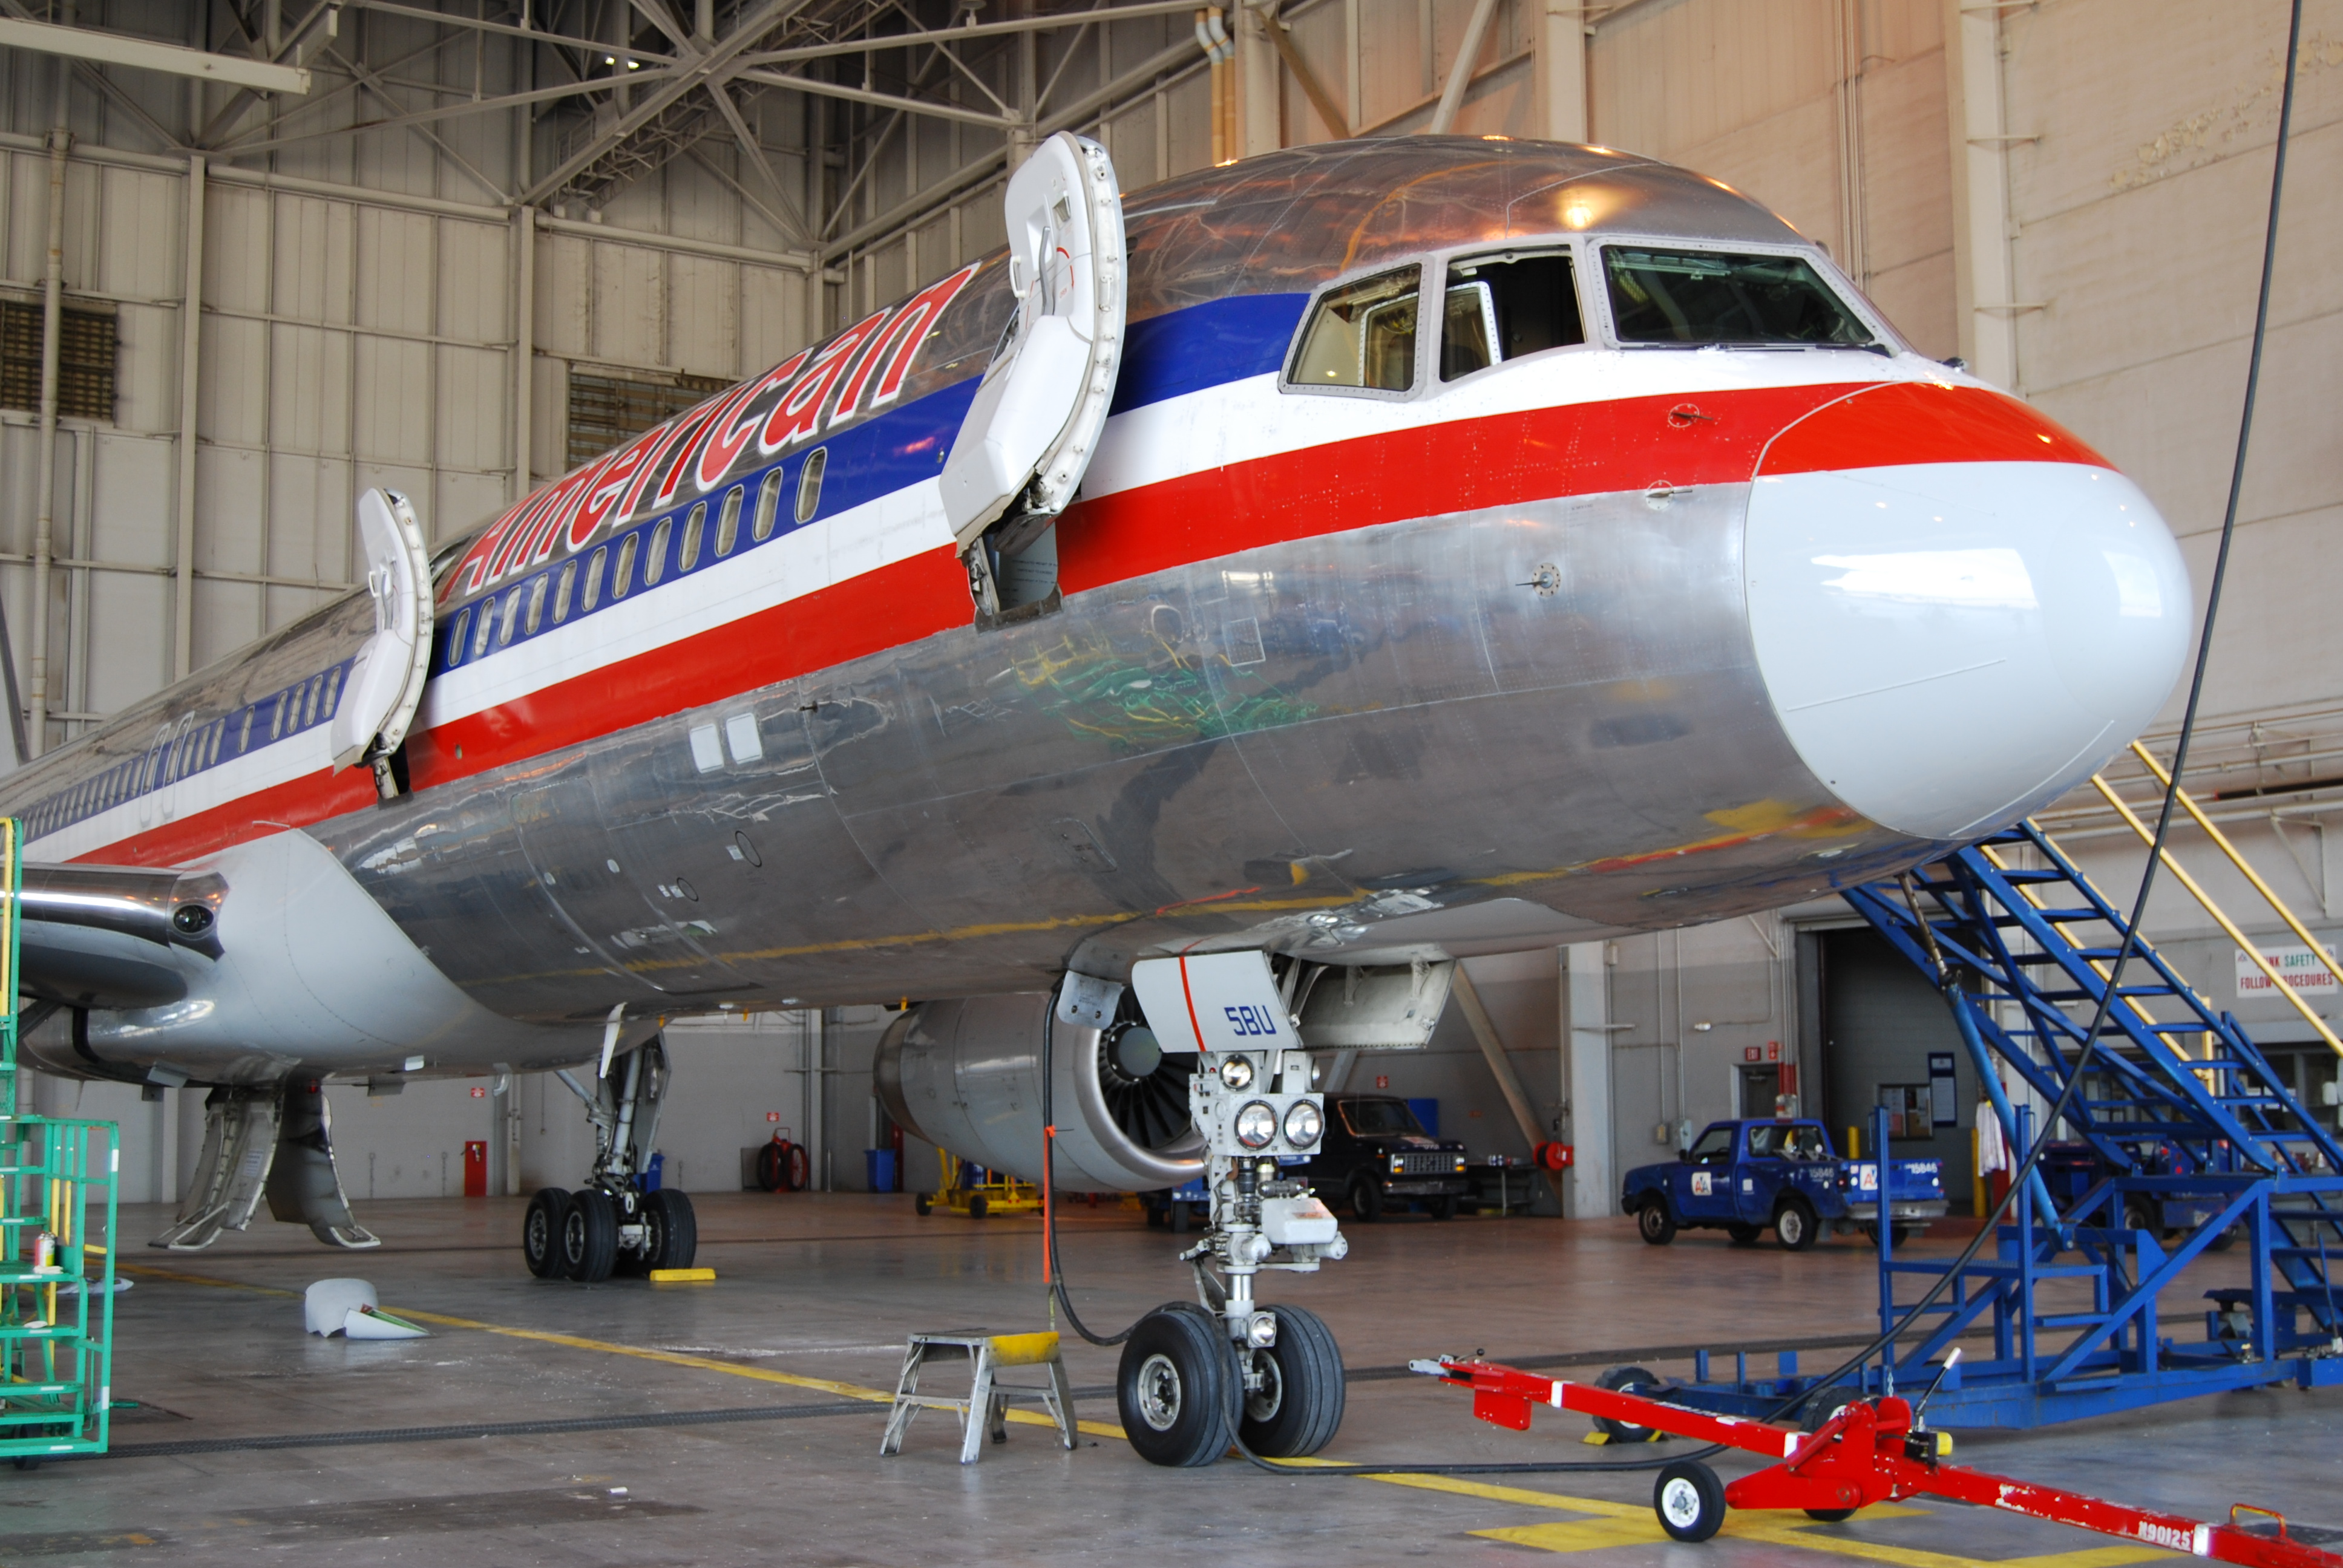 File:American Airlines B757-200 starboard nose and forward fuselage ...